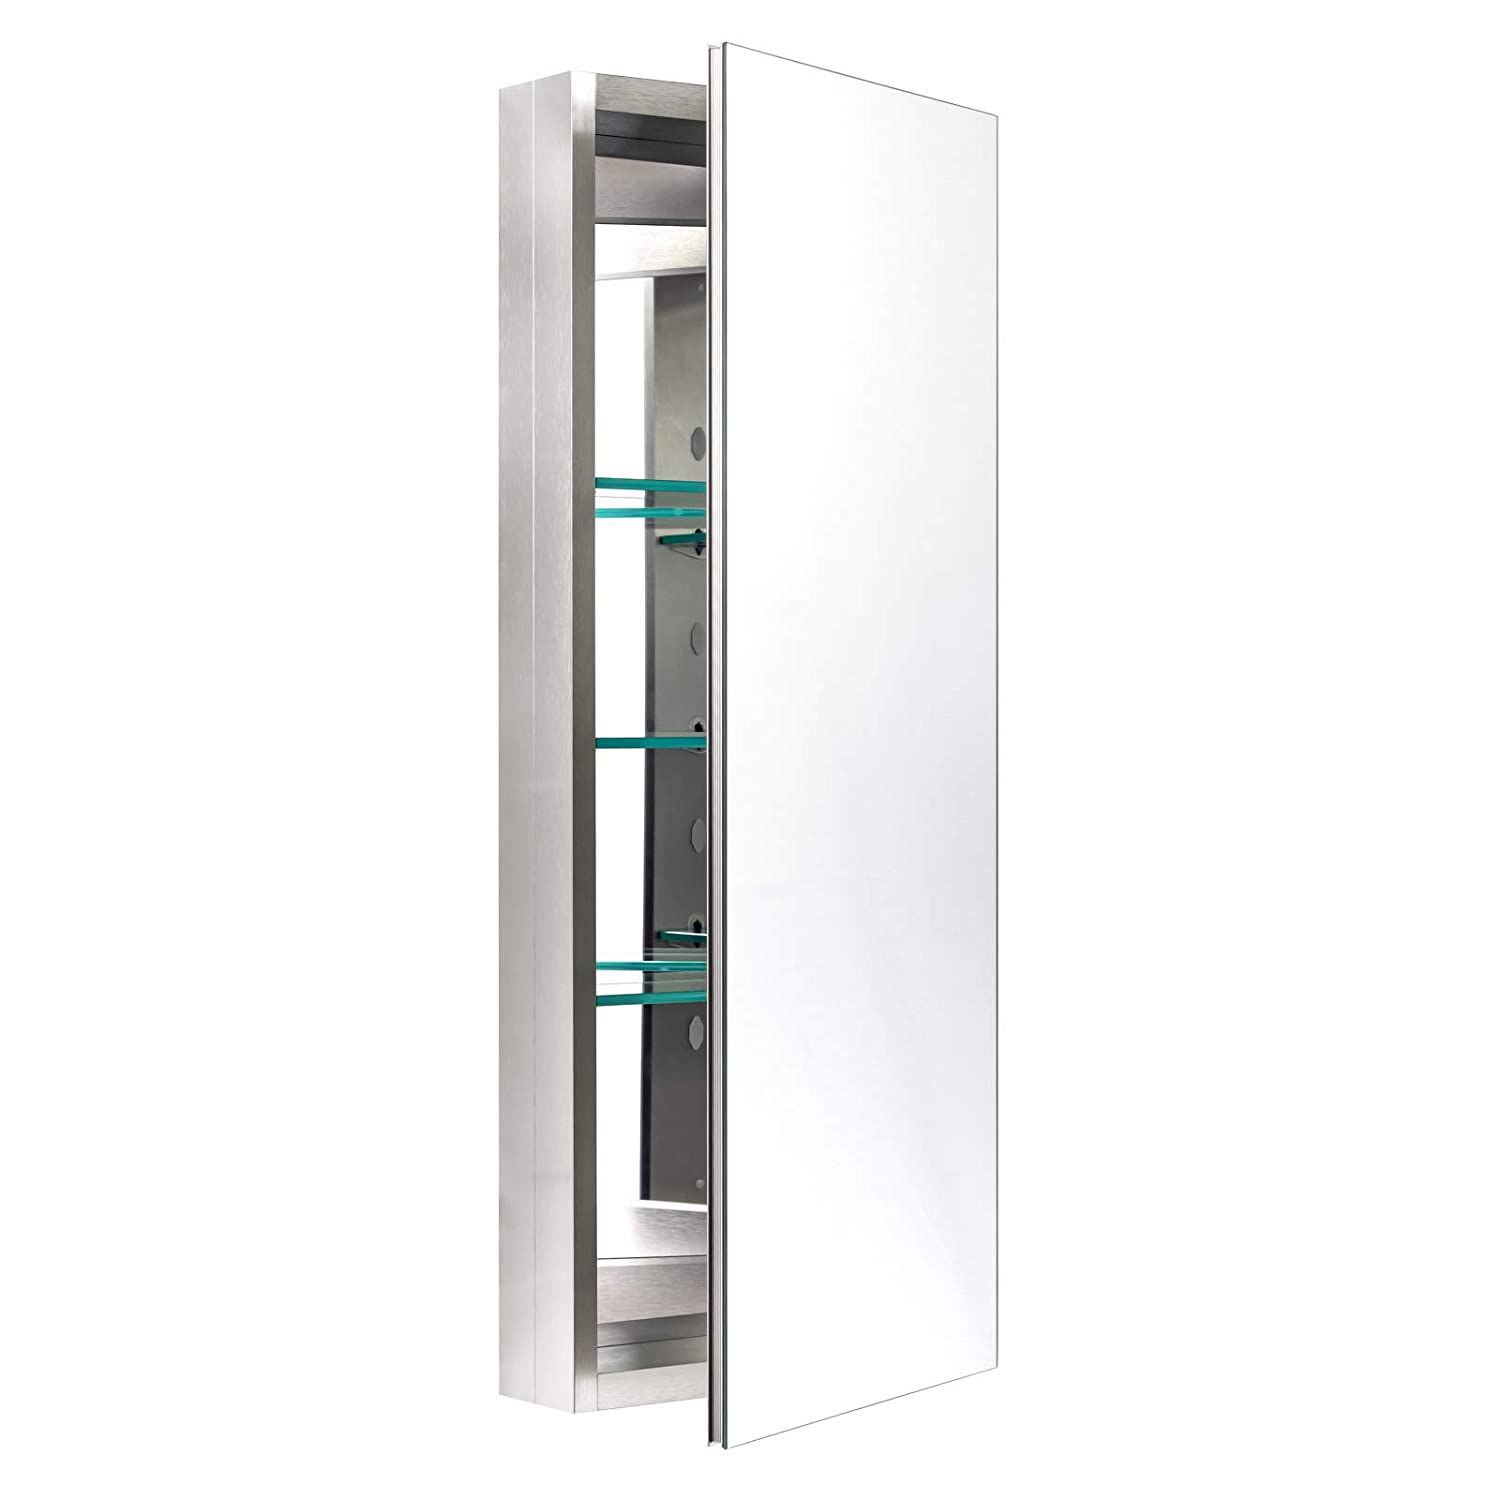 Miseno MBC3615-BN Dual Mount 36 H X 15 W Medicine Cabinet Surface or Recessed Mounting